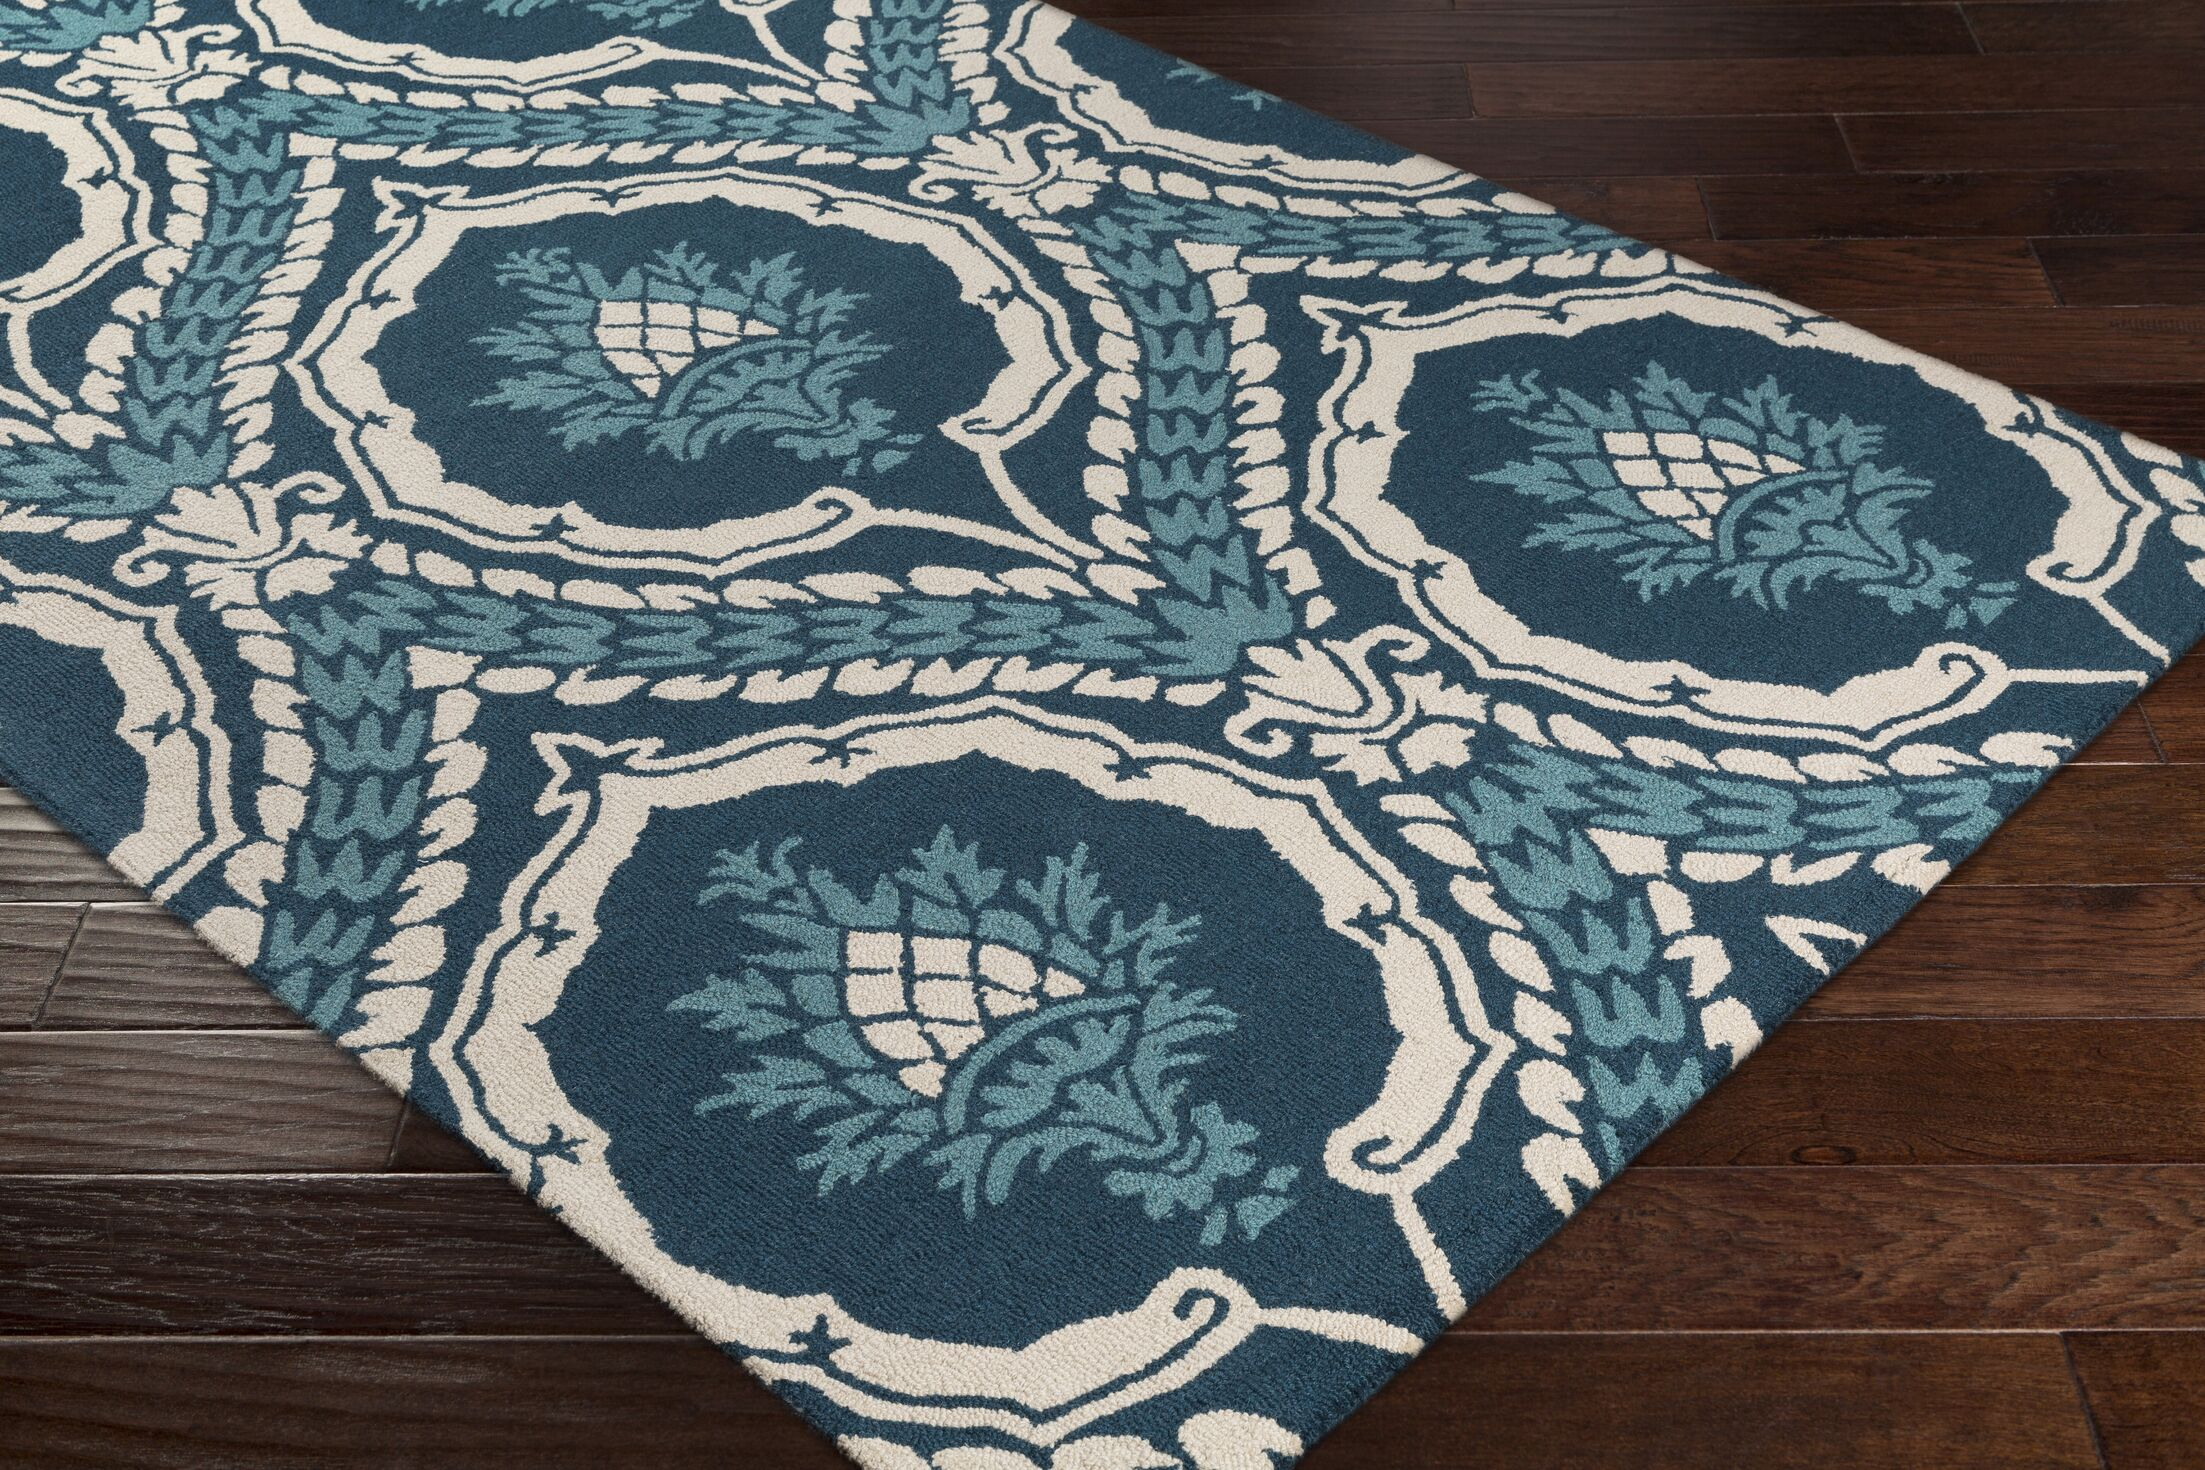 Ebersole Hand-Tufted Teal/Ivory Area Rug Rug Size: Rectangle 5' x 7'6